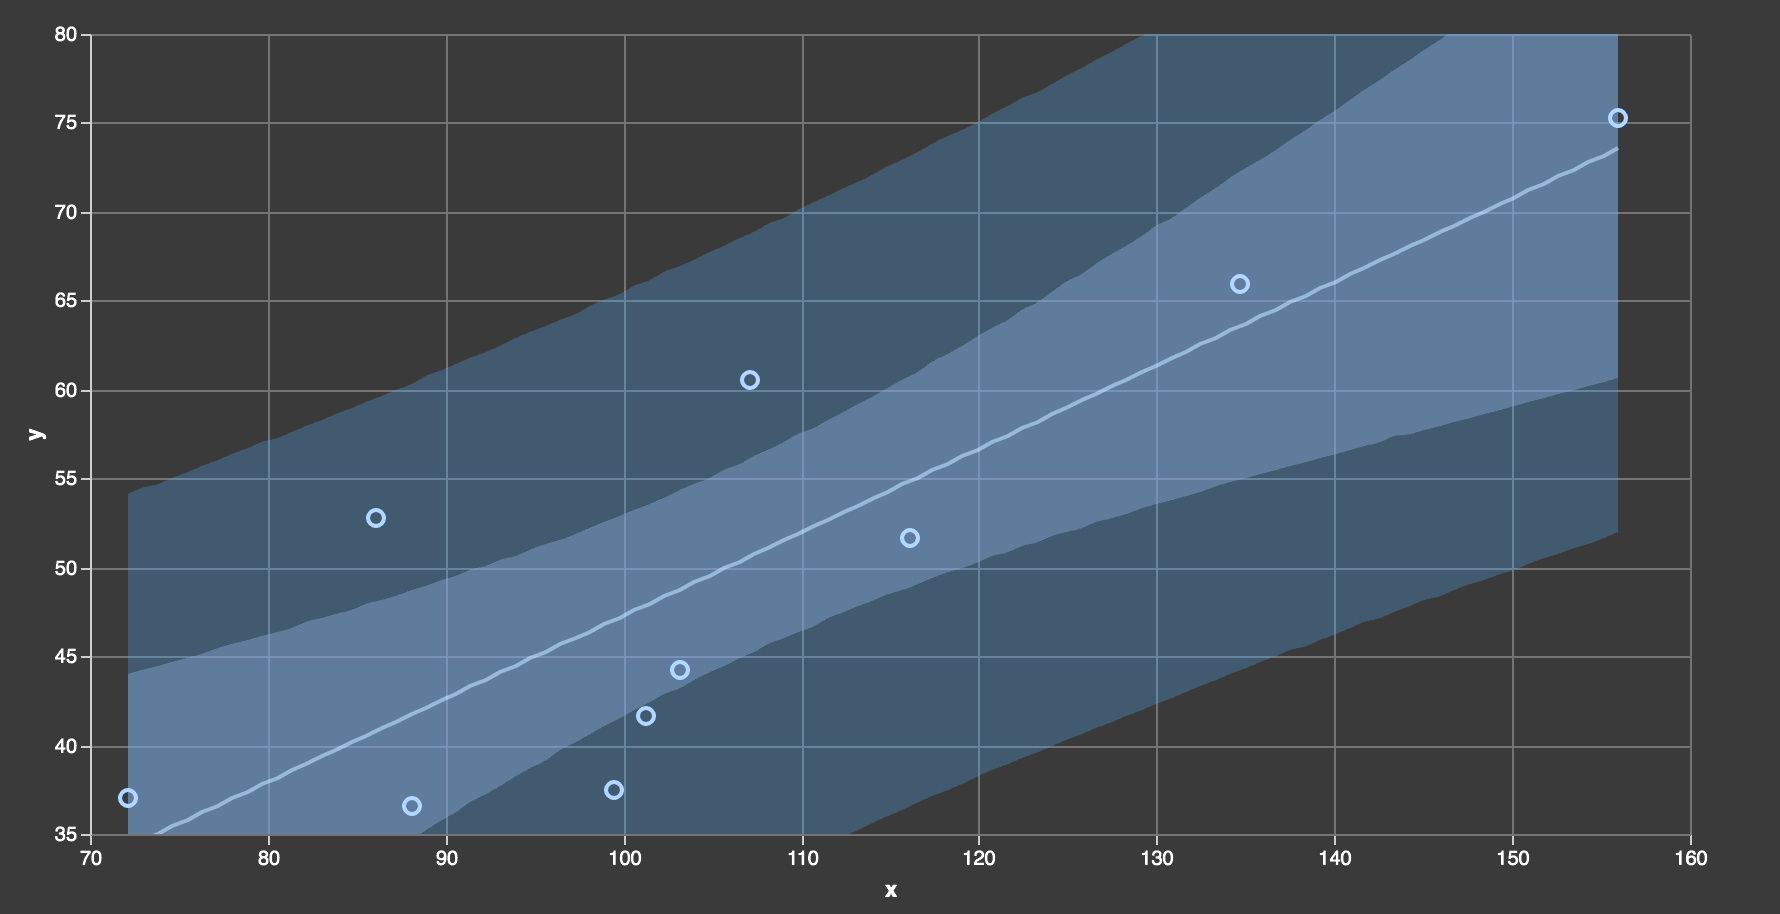 Linear regression confidence & prediction intervals